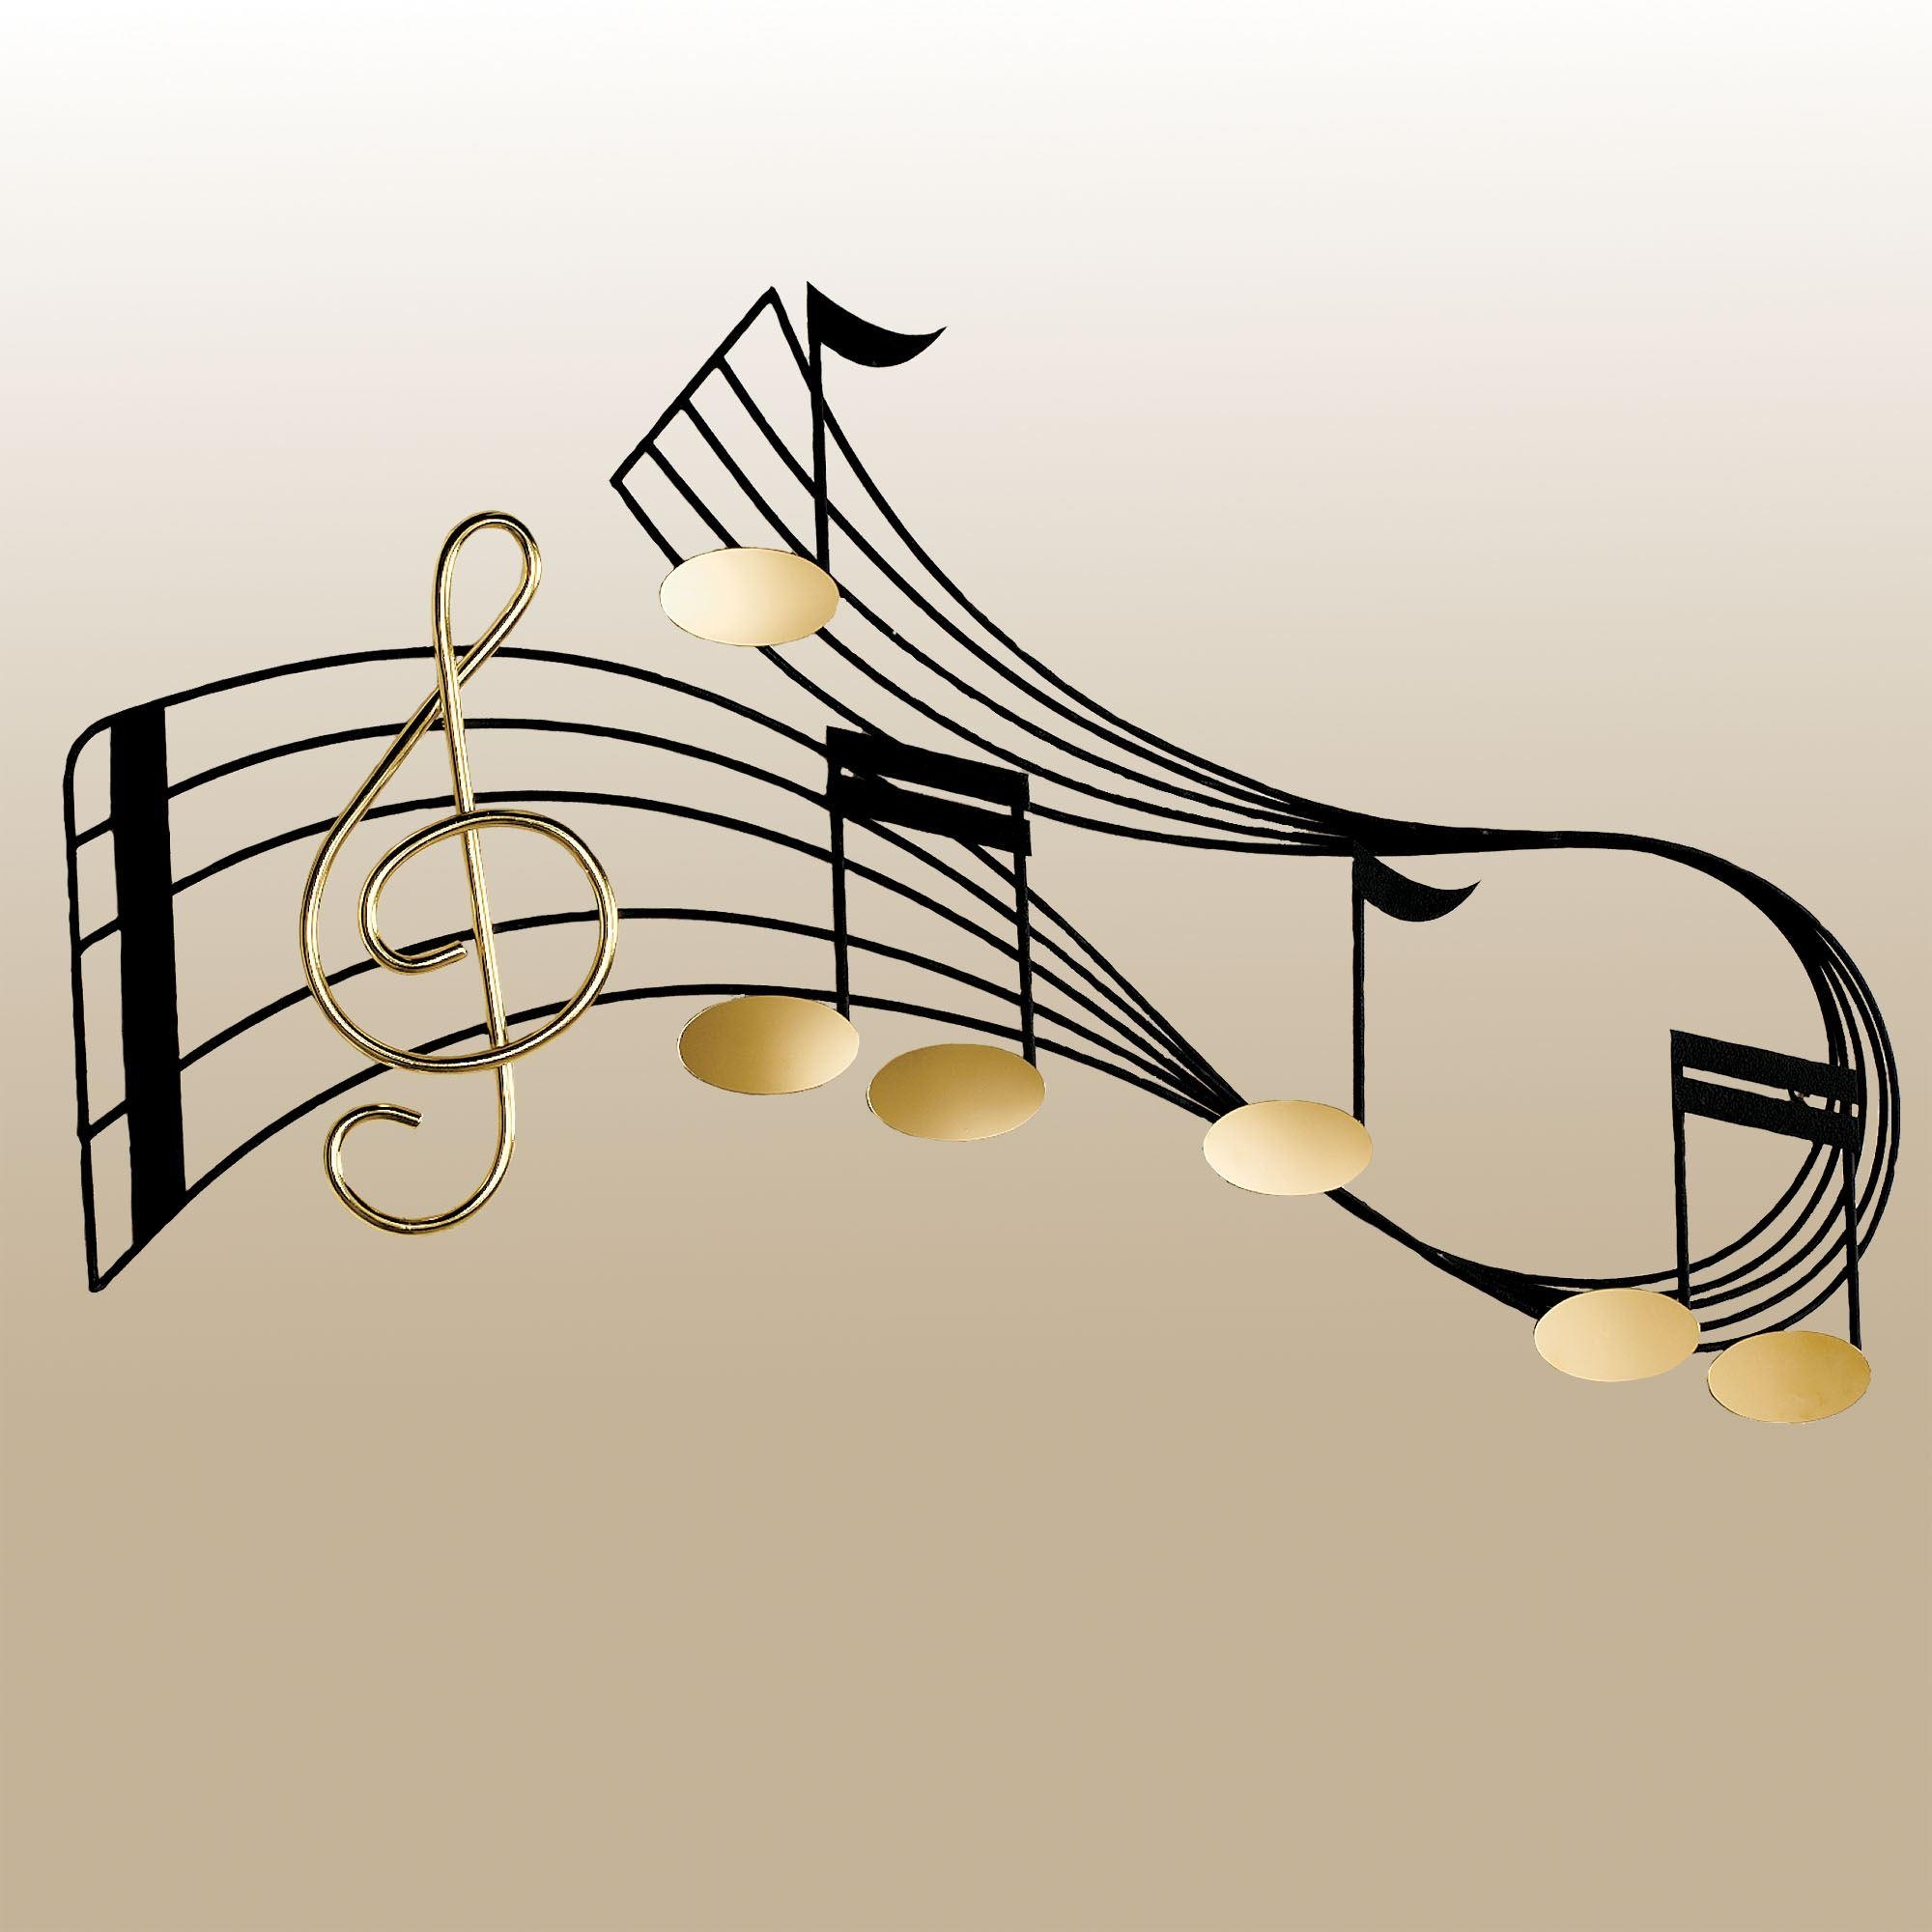 Rhythm Metal Wall Sculpture Throughout Metal Music Notes Wall Art (Image 11 of 20)